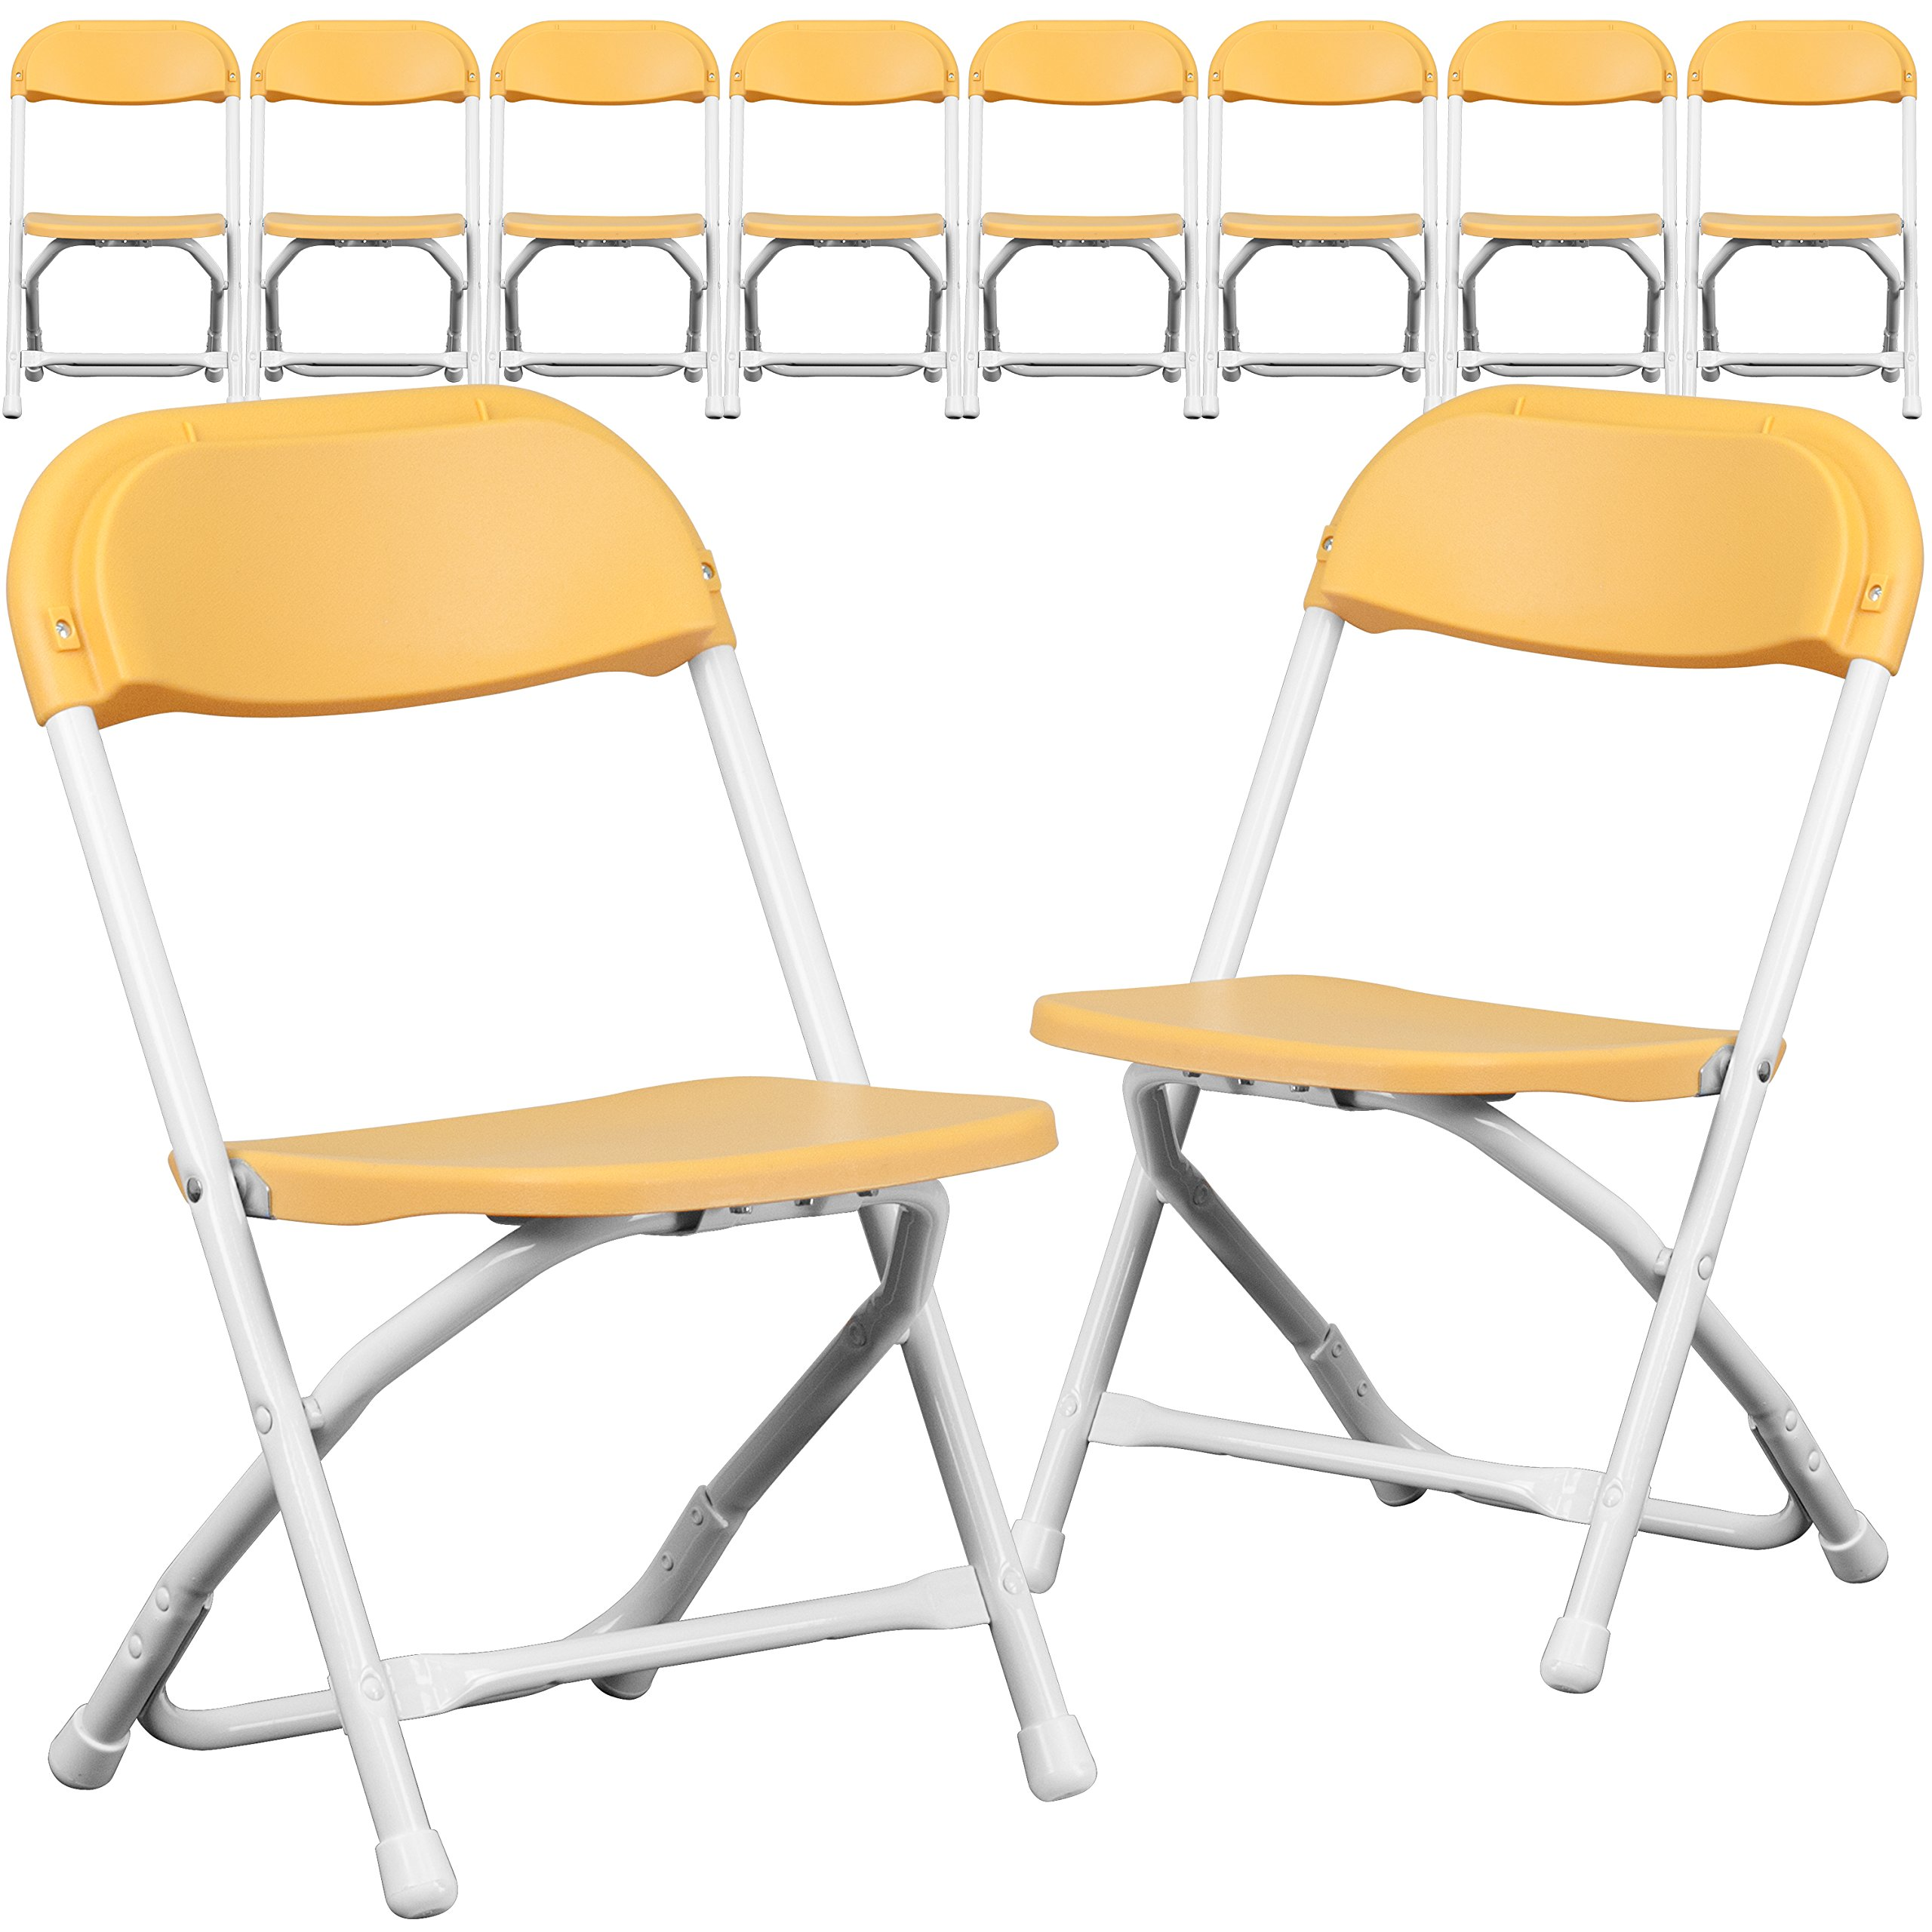 Flash Furniture 10 Pk. Kids Yellow Plastic Folding Chair